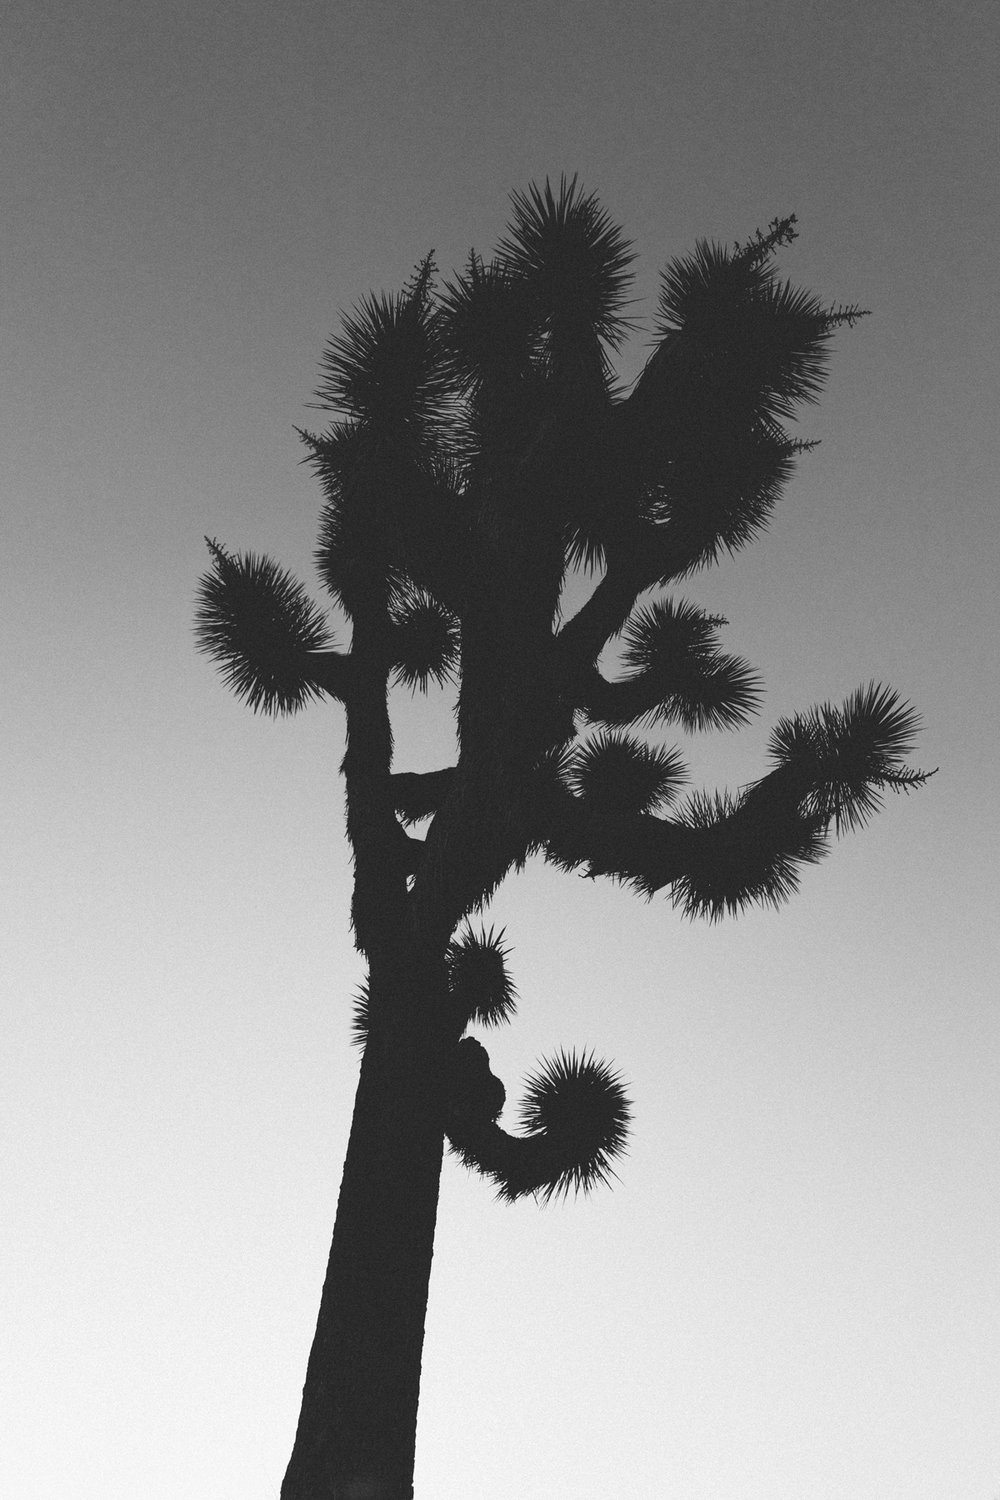 scott-snyder-photo-joshua-tree-08.jpg